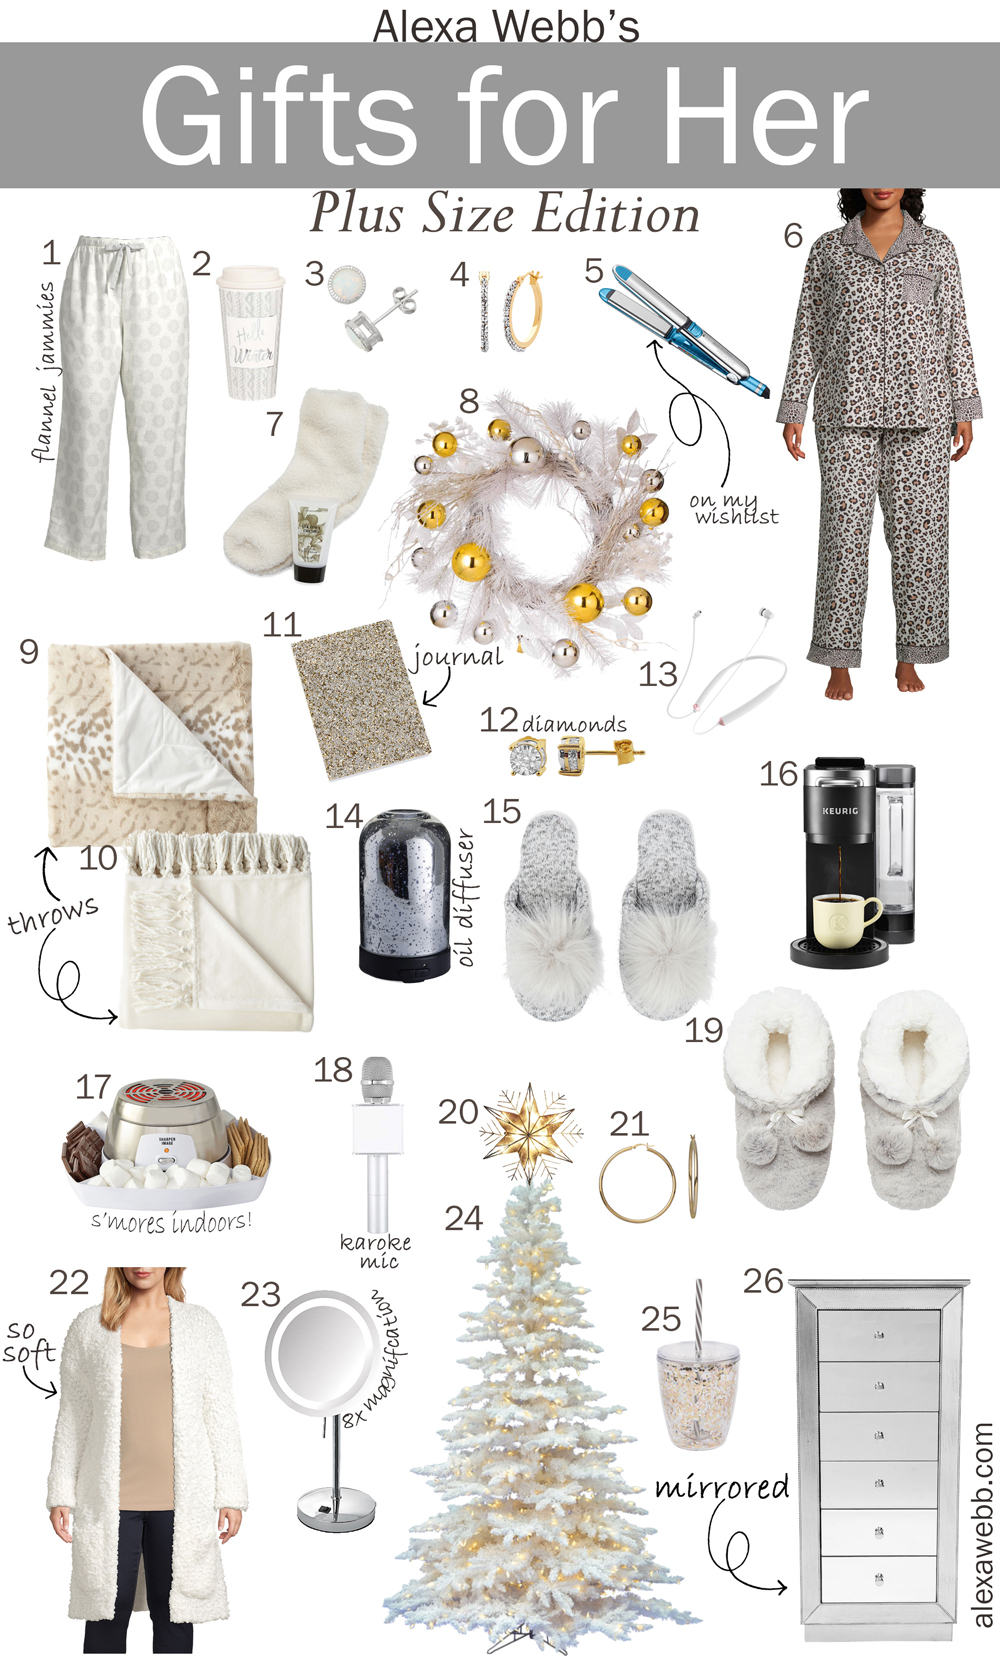 Gifts for Her with JCPenney - Alexa Webb